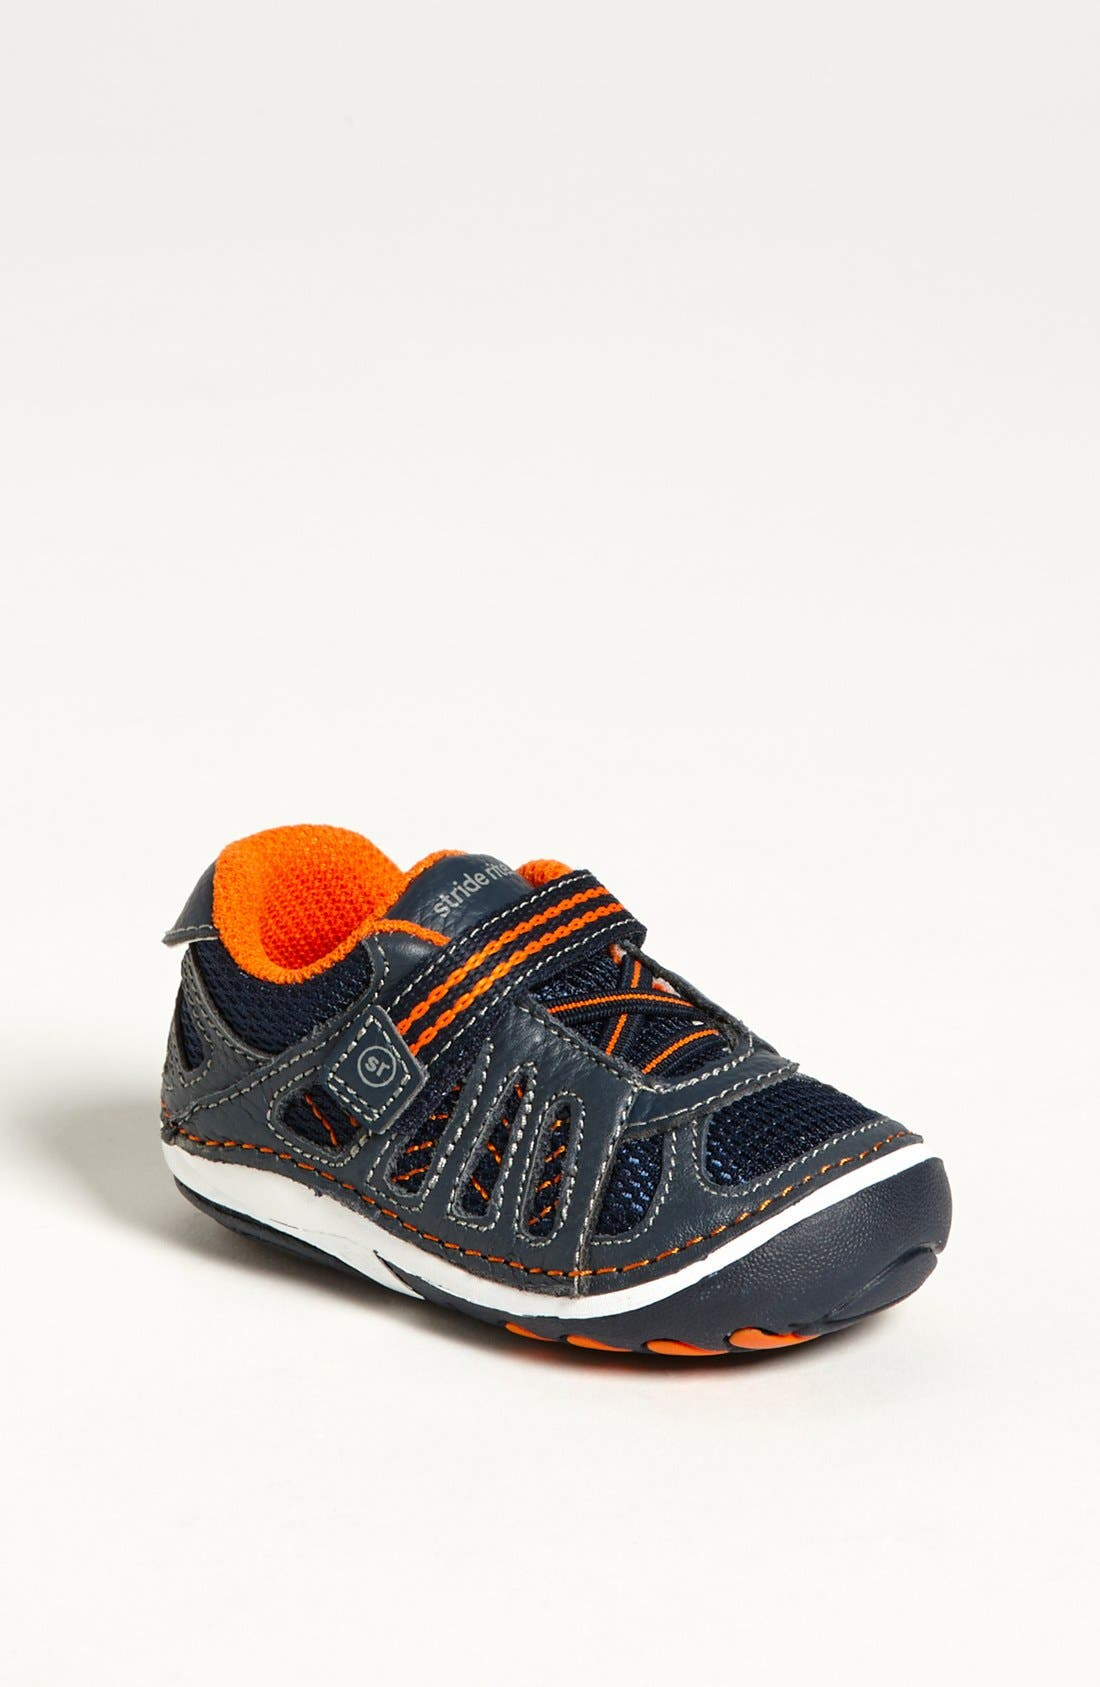 Alternate Image 1 Selected - Stride Rite 'Chip' Sneaker (Baby & Walker)